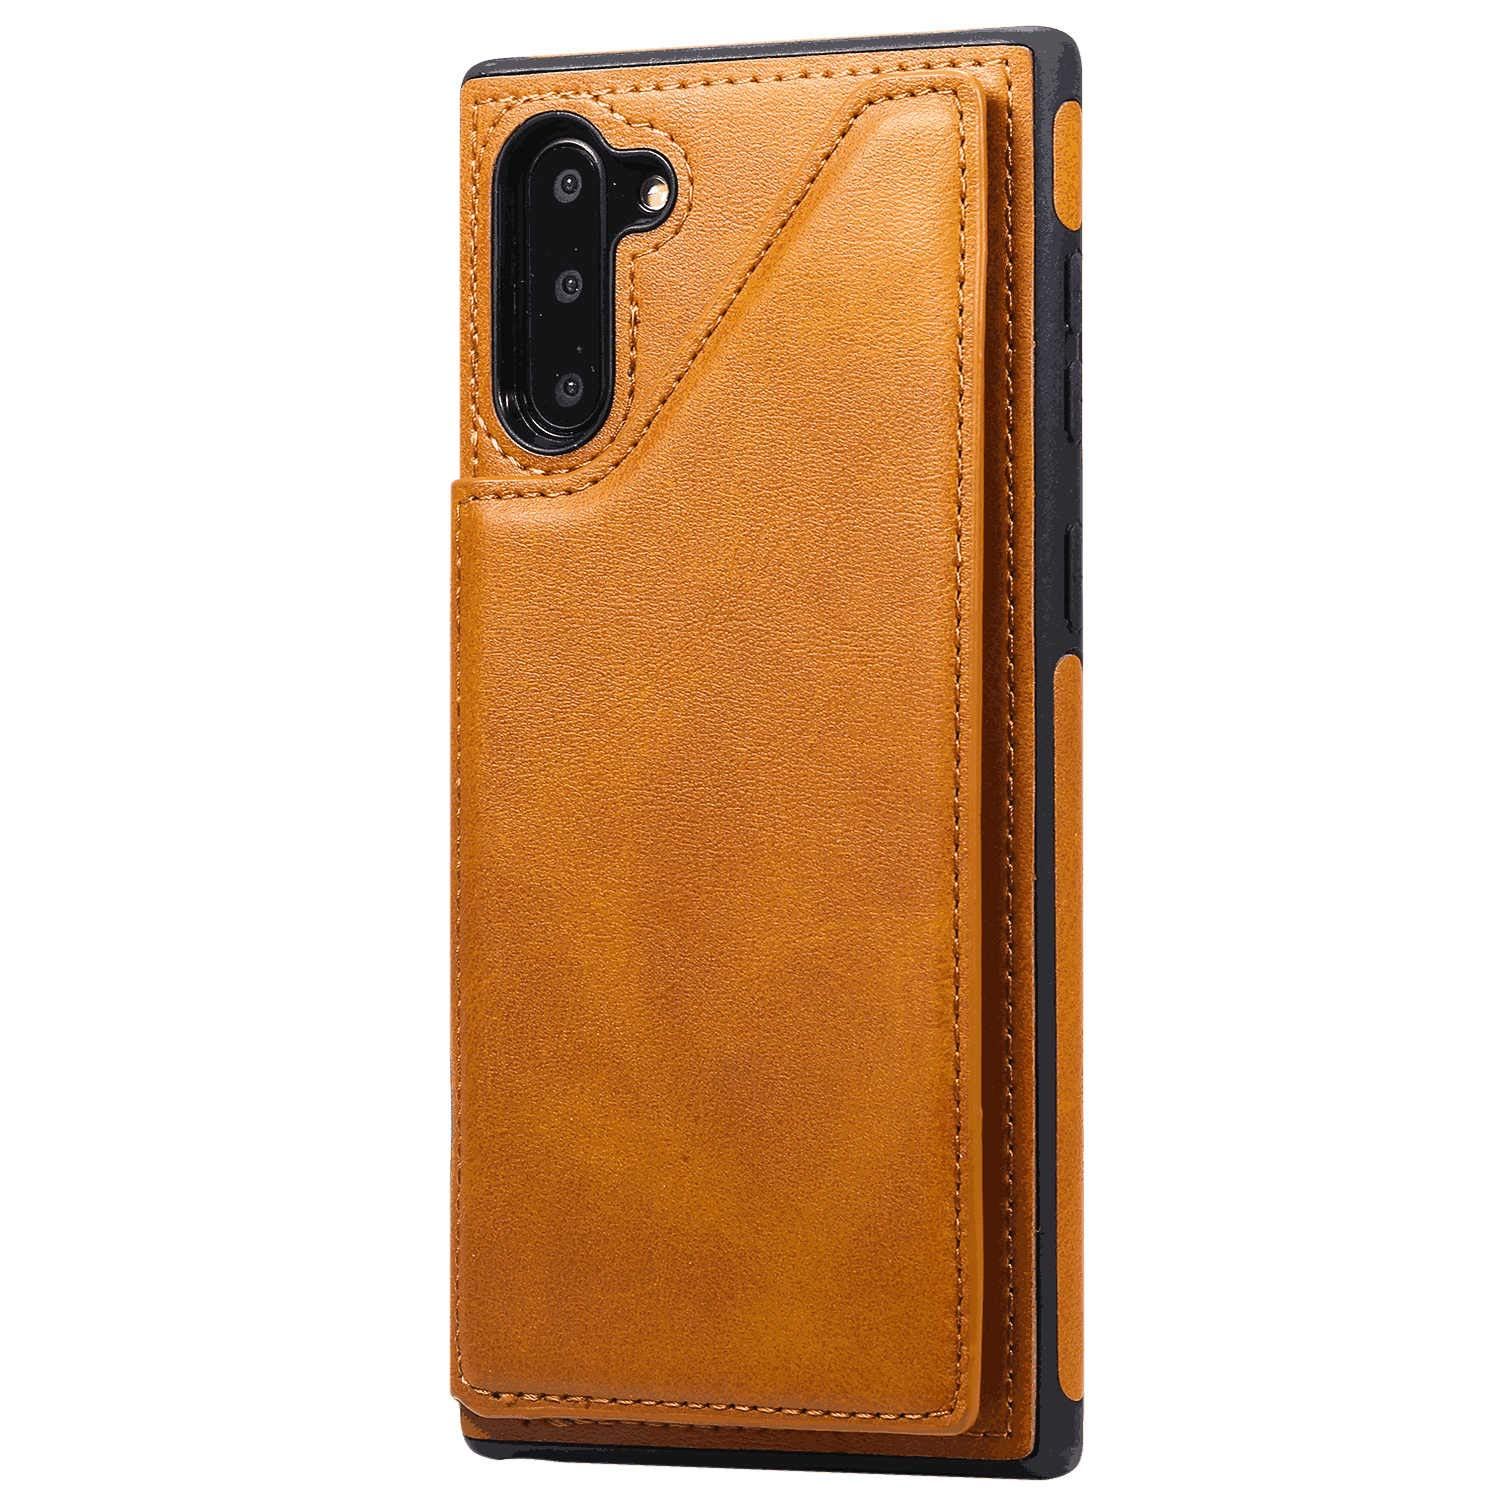 Cover for Samsung Galaxy S9 Leather Extra-Durable Business Kickstand Card Holders Mobile Phone Cover with Free Waterproof-Bag Samsung Galaxy S9 Flip Case